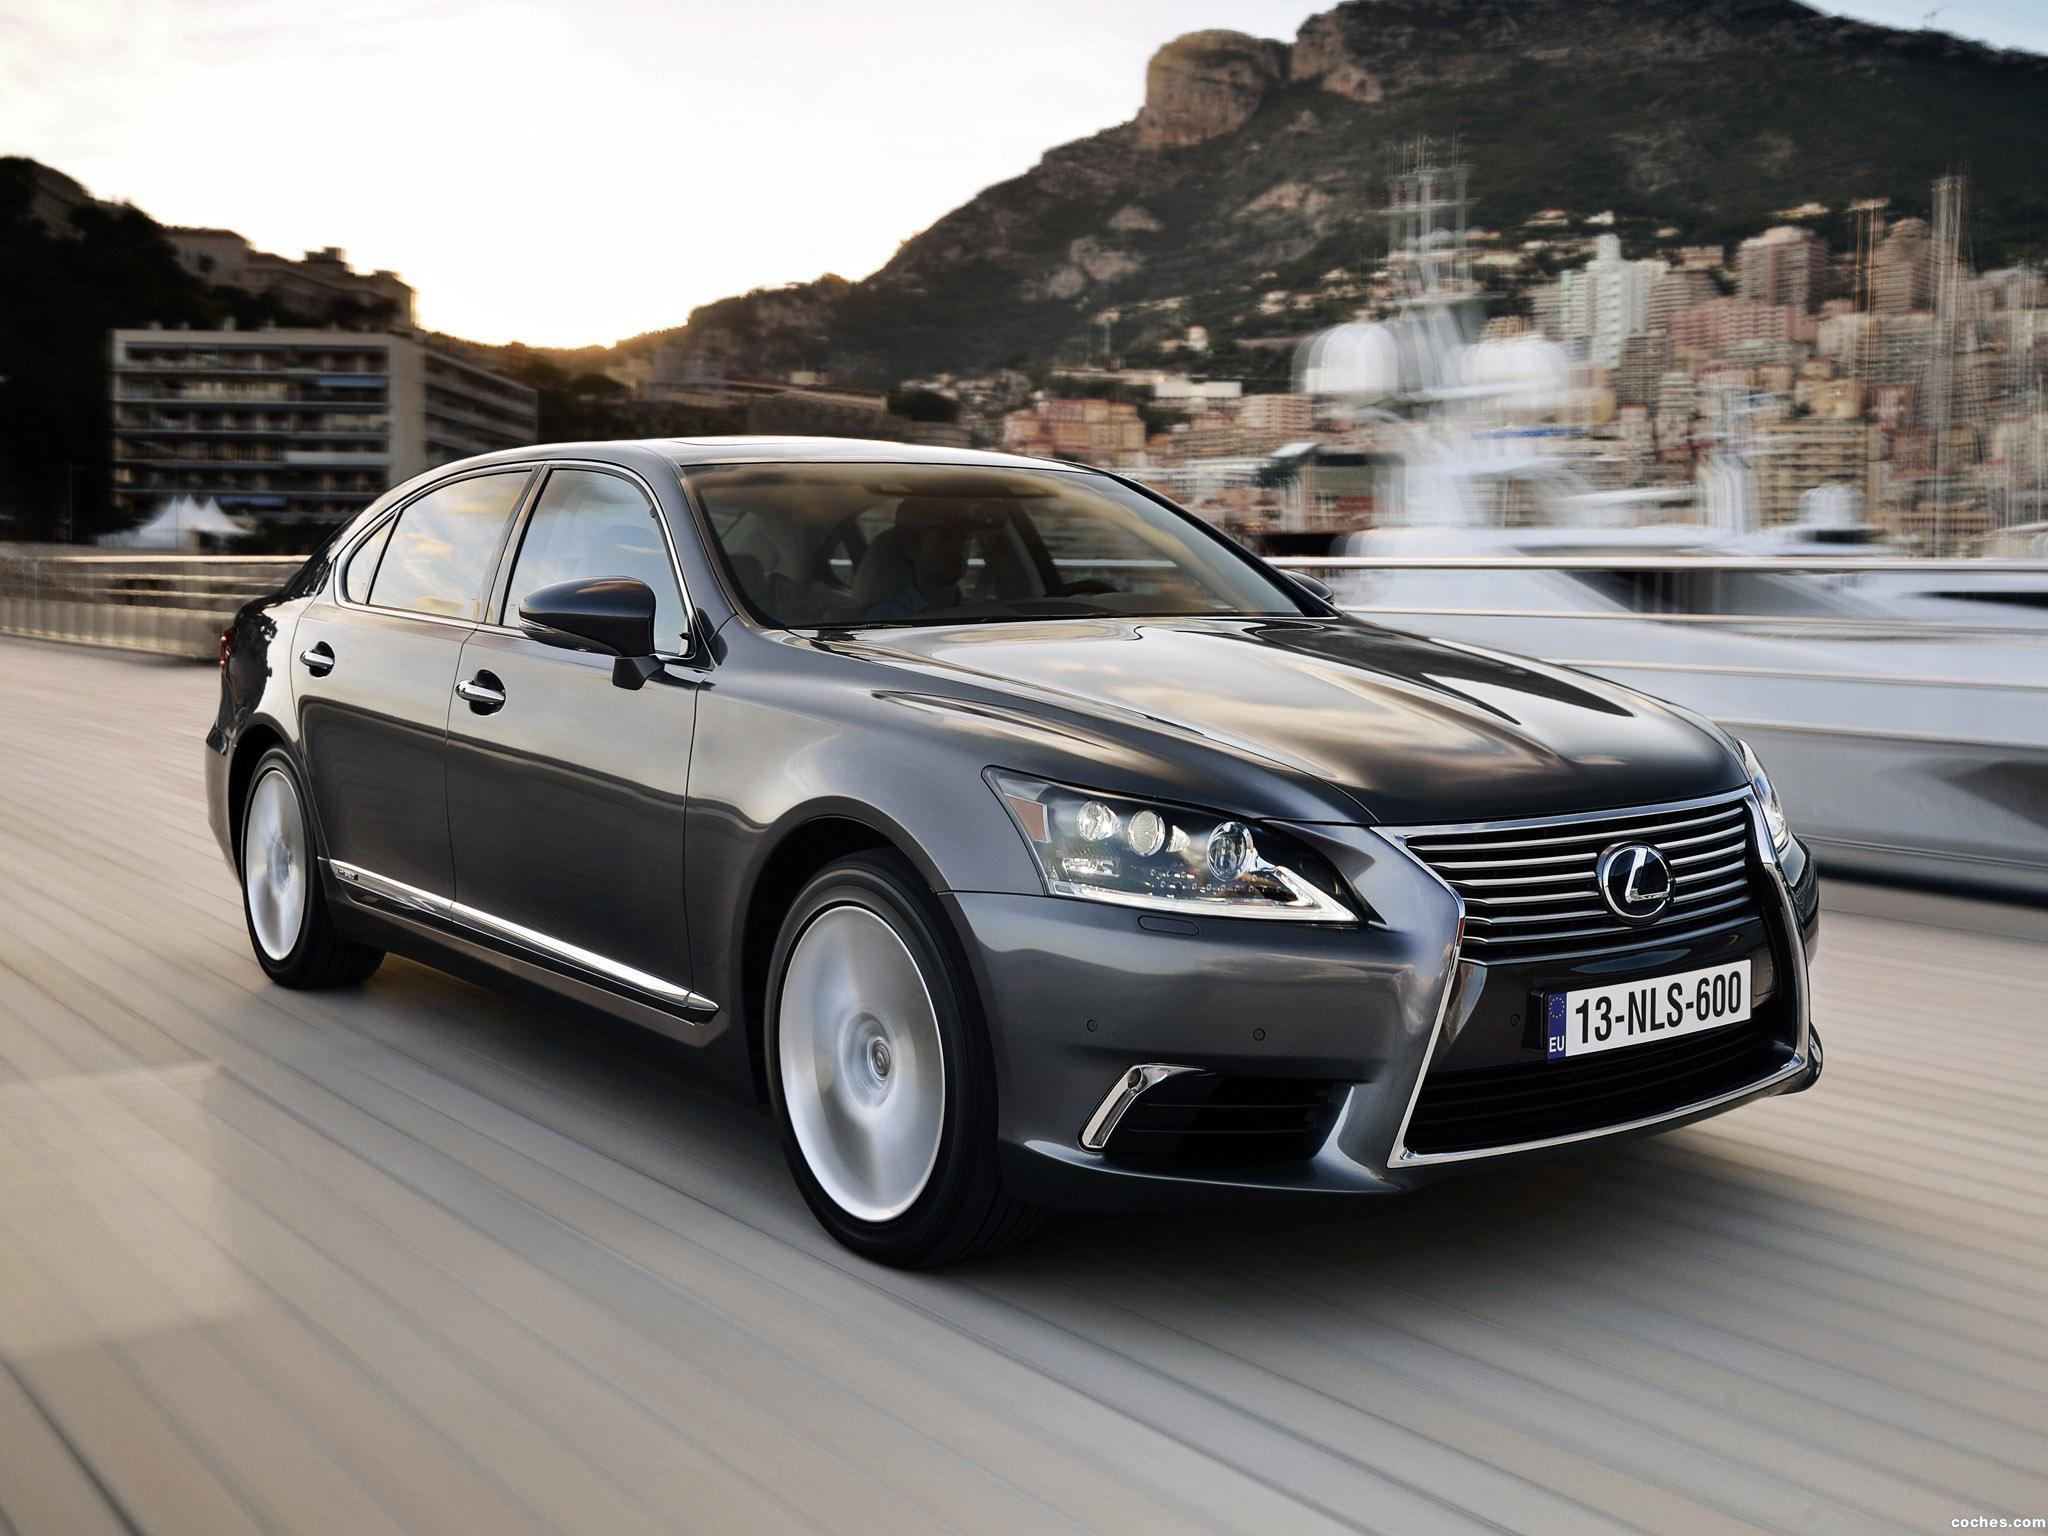 Fotos de Lexus LS 600hL Europe 2013